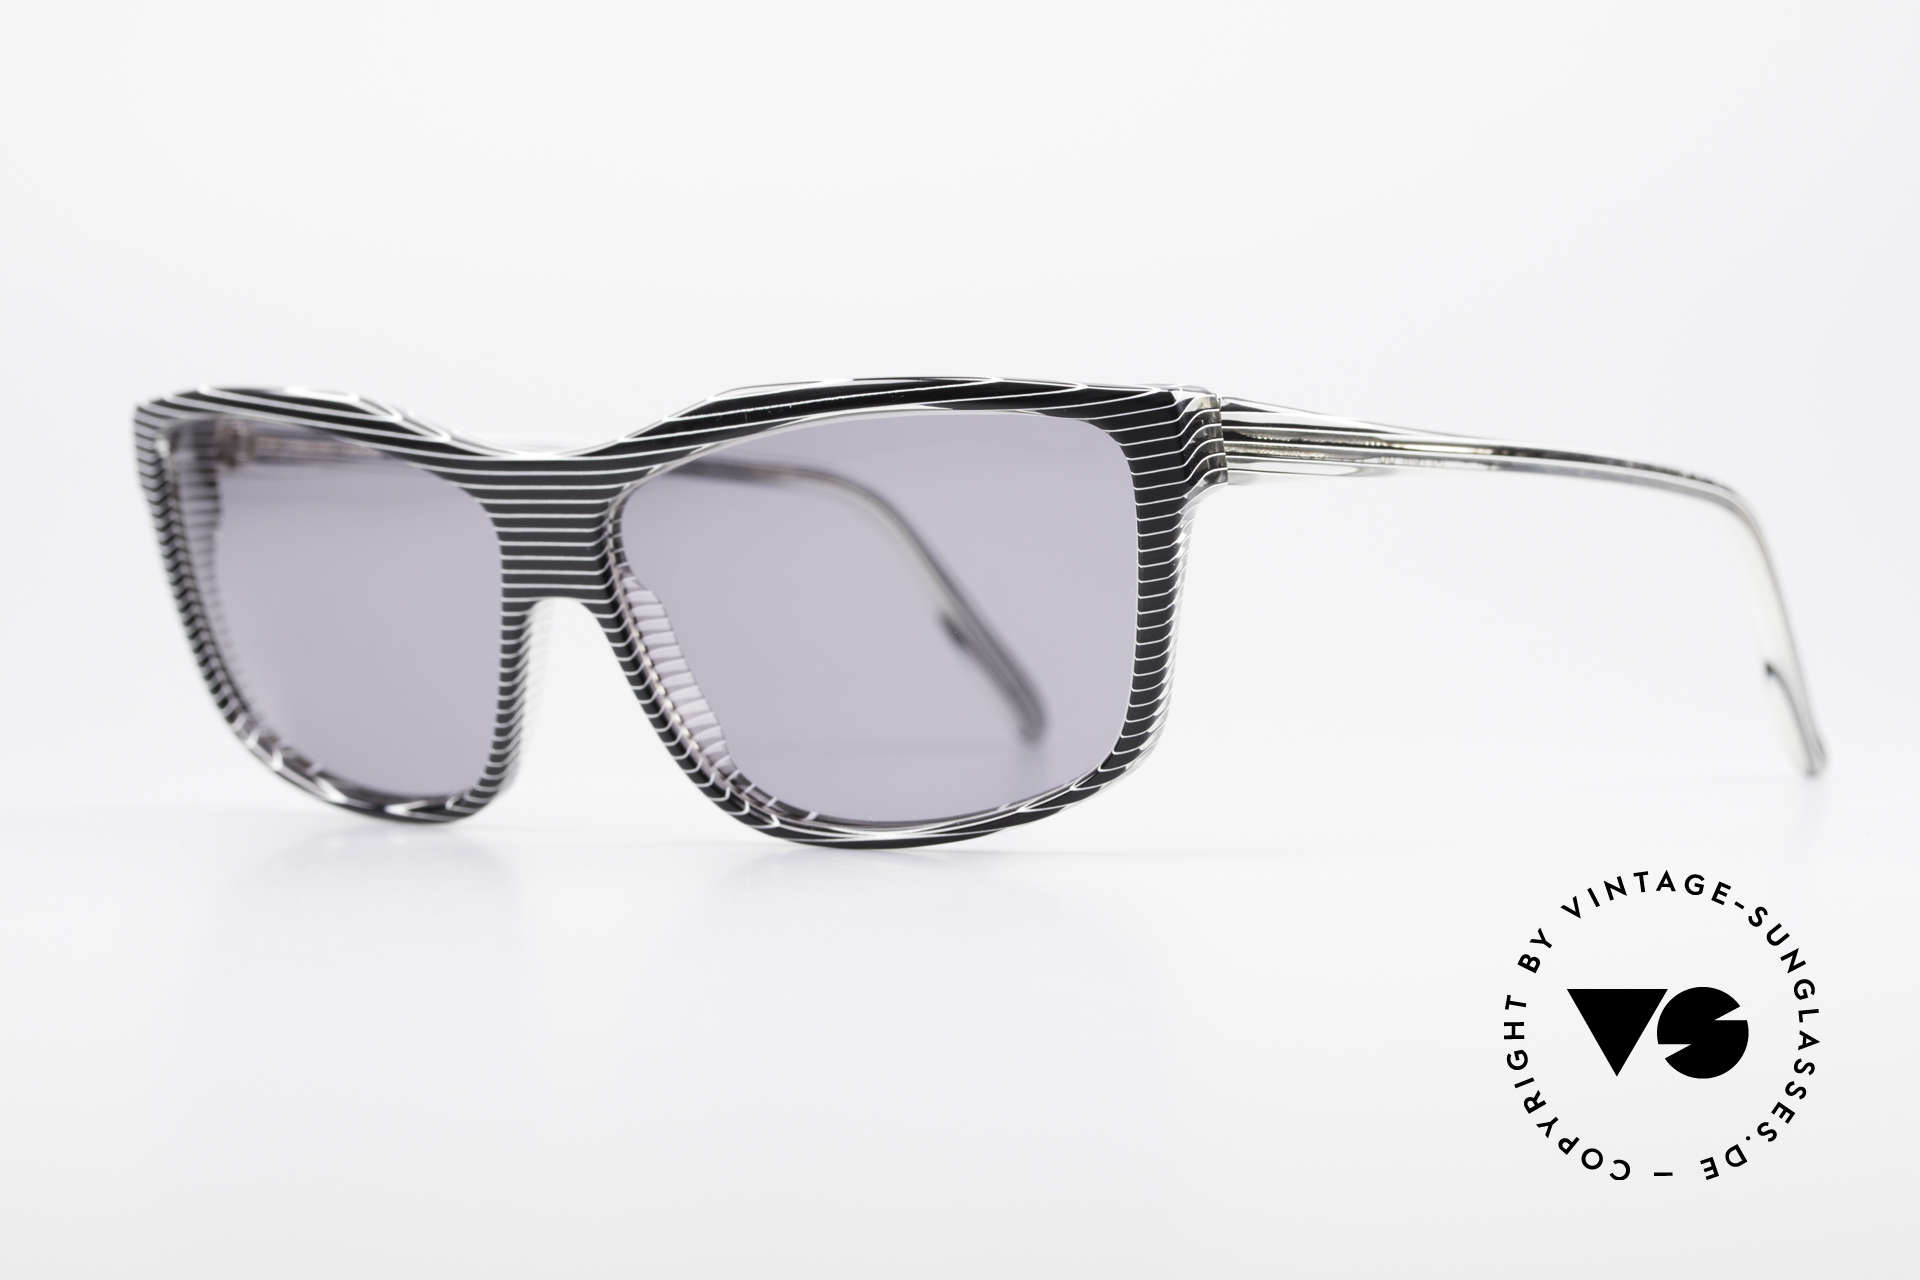 Alain Mikli 701 / 986 Rare 80s Designer Sunglasses, with gray tinted sun lenses (for 100% UV protection), Made for Women